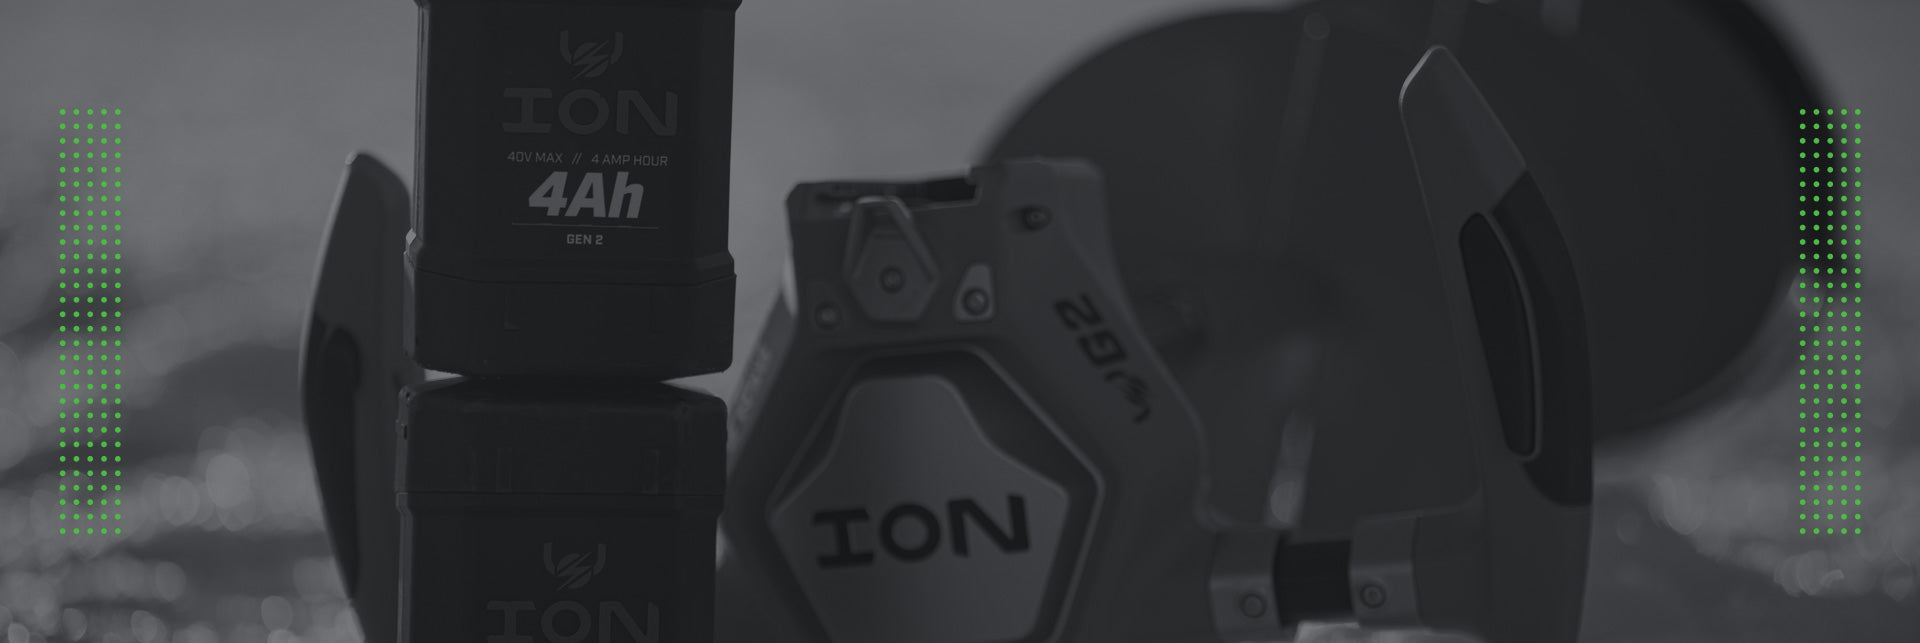 ION G2